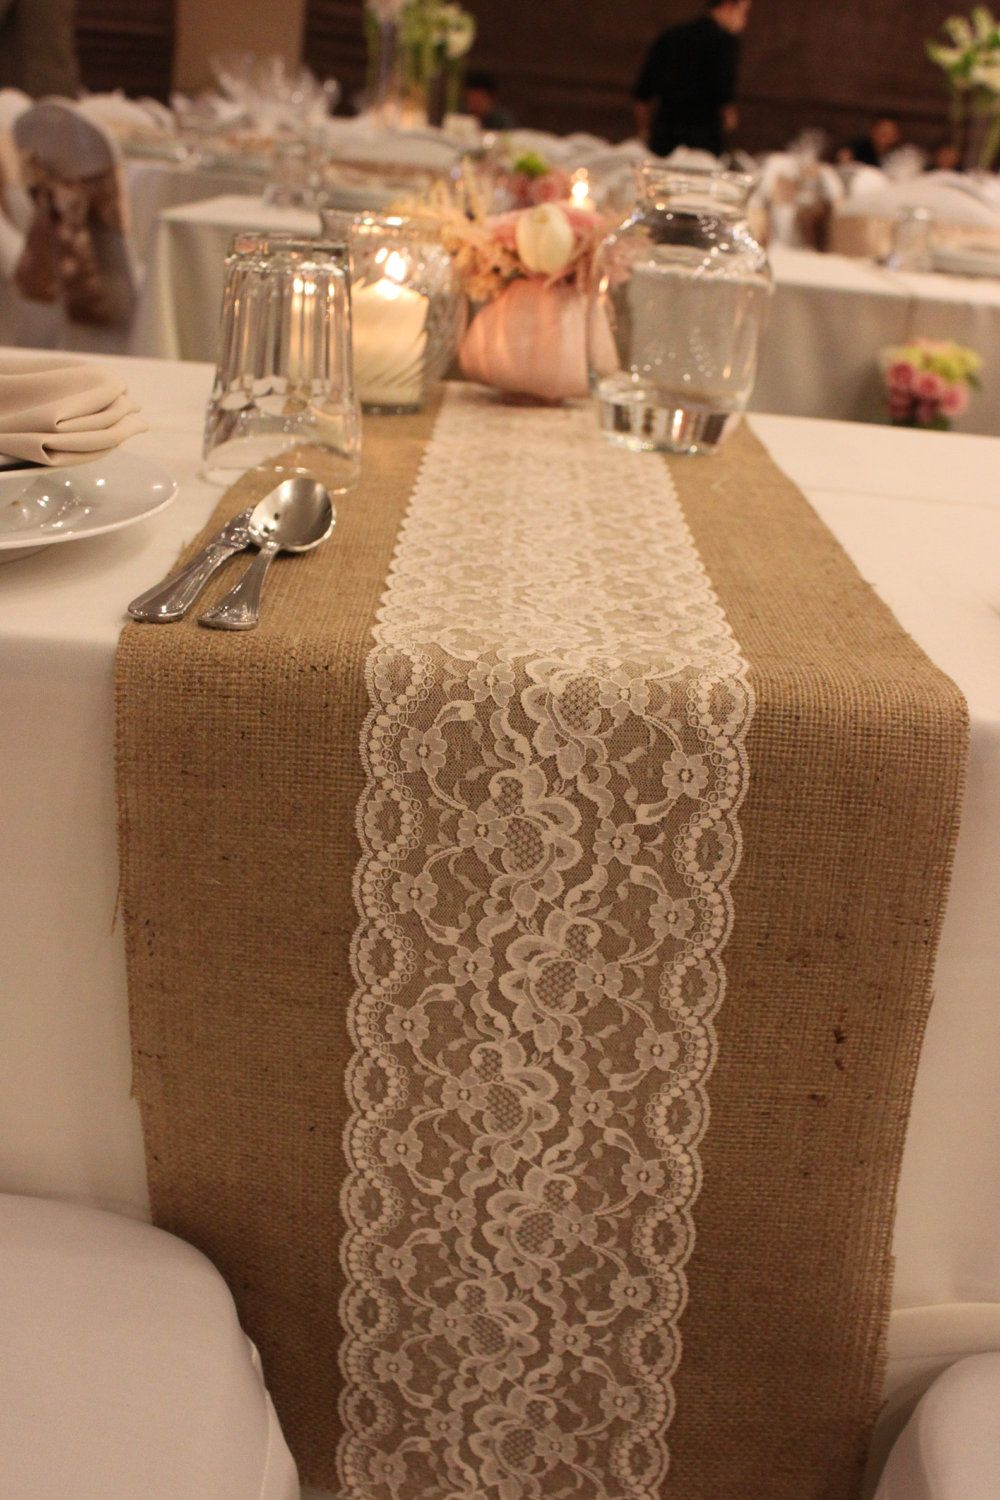 Burlap table runner with hand crouched white lace wedding table ...